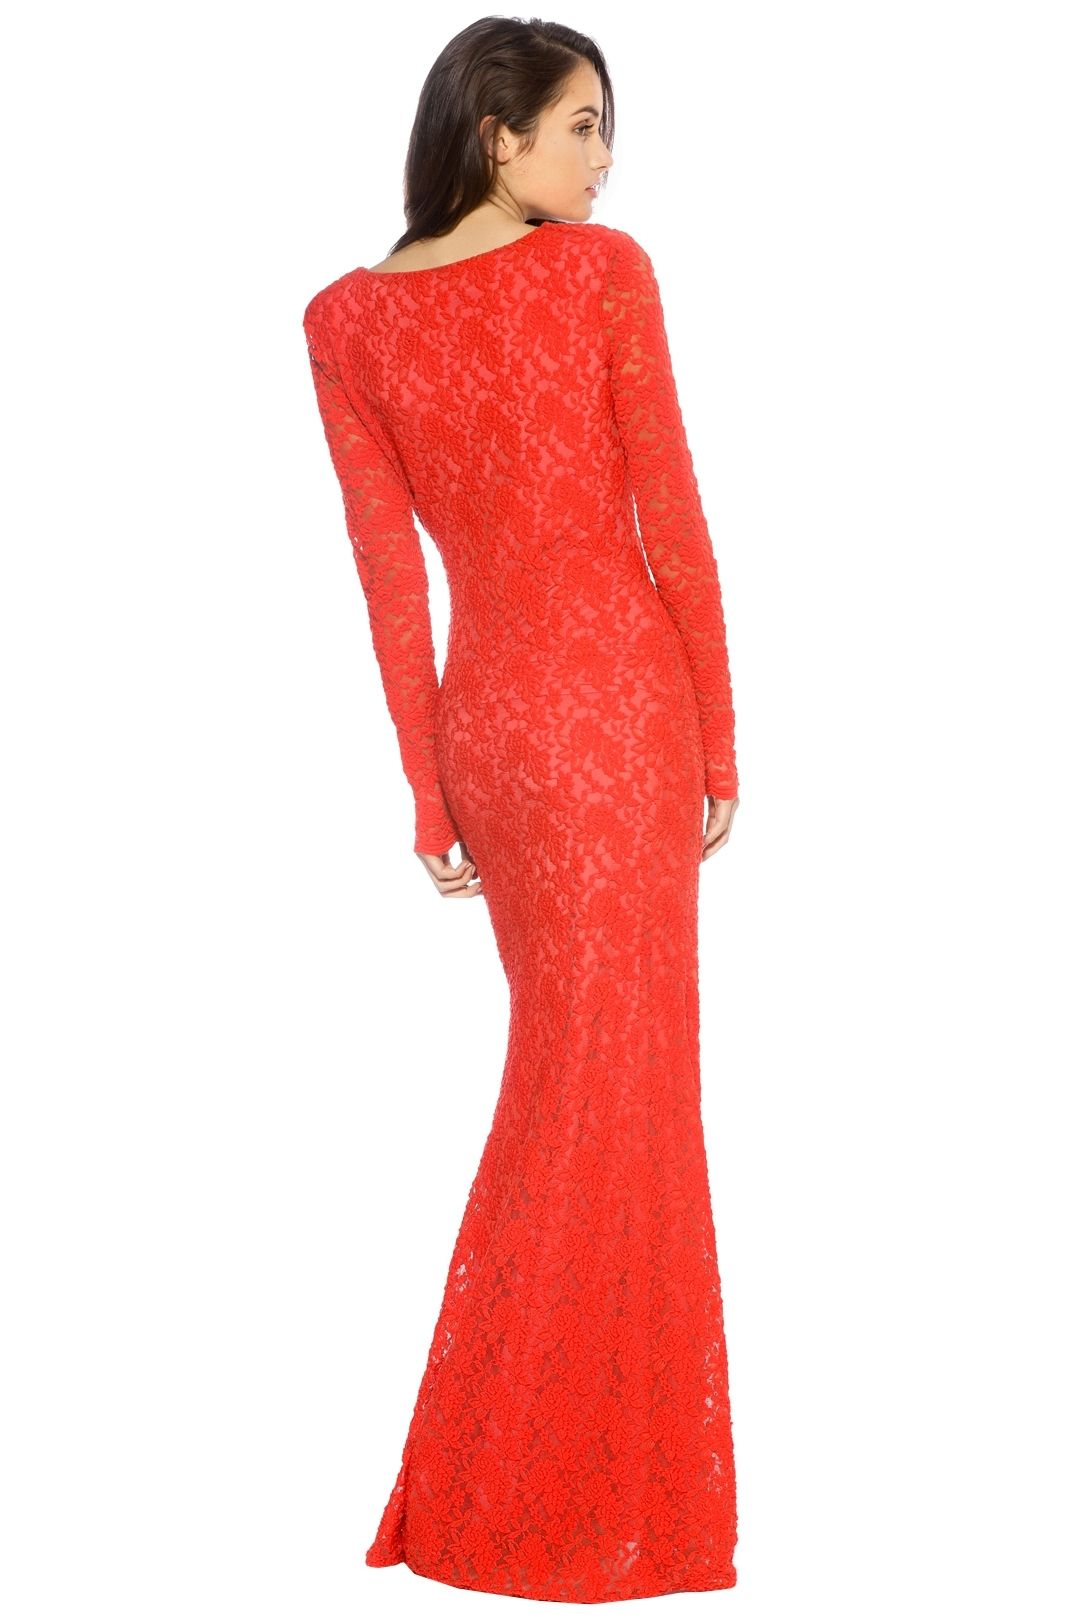 Ae'lkemi - V Plunge Red Long Sleeve Gown - Red - Back